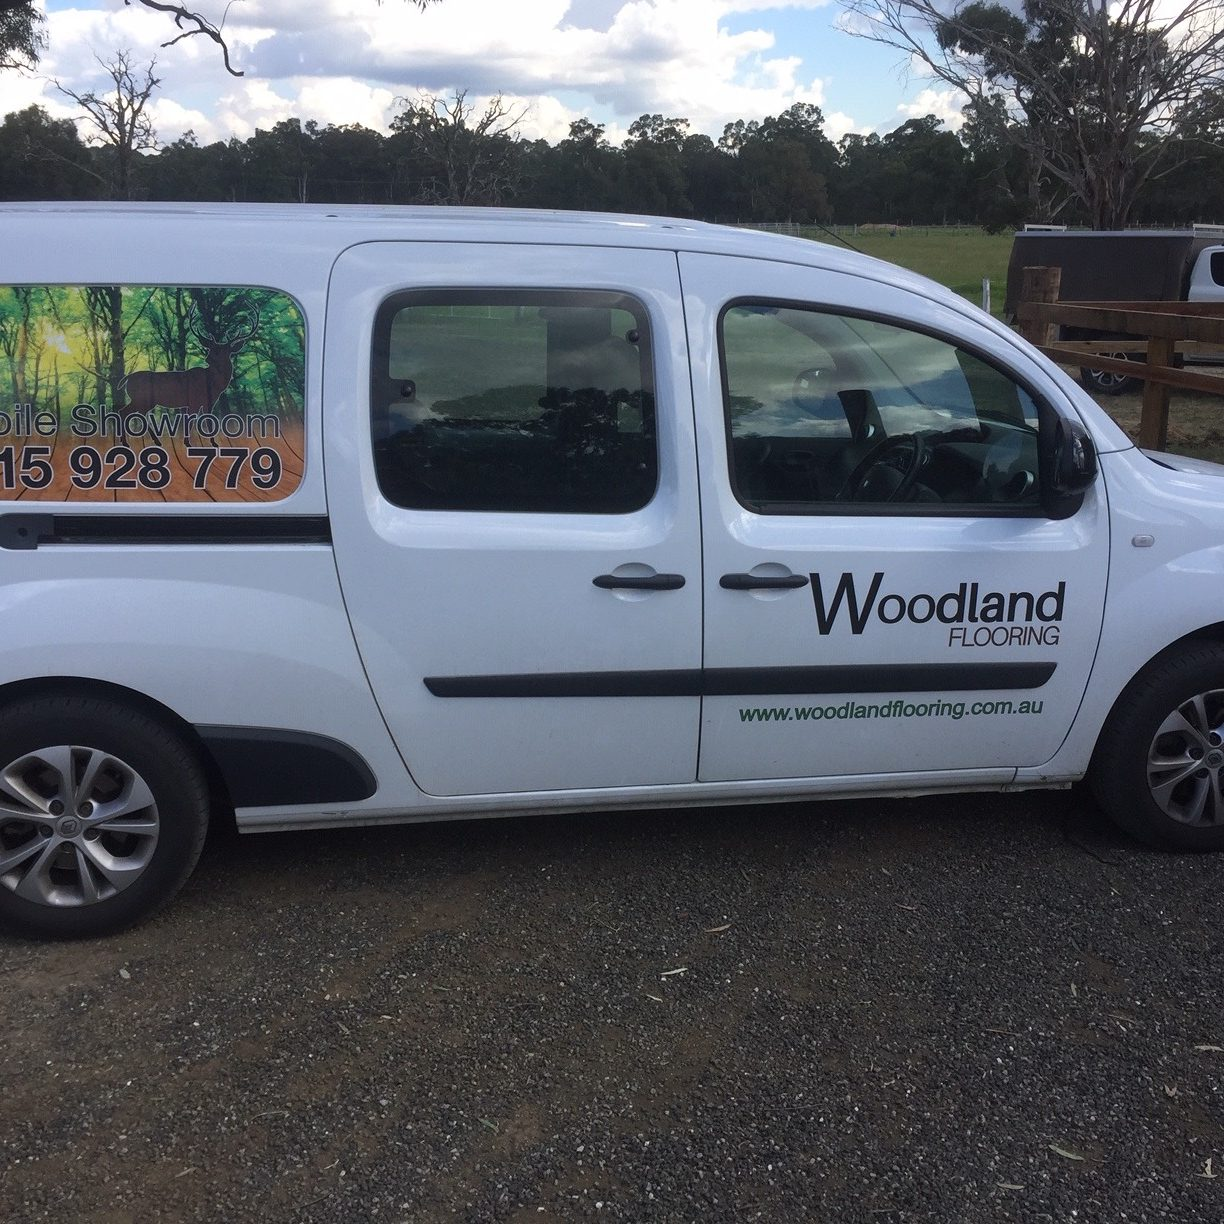 Woodland Flooring Van